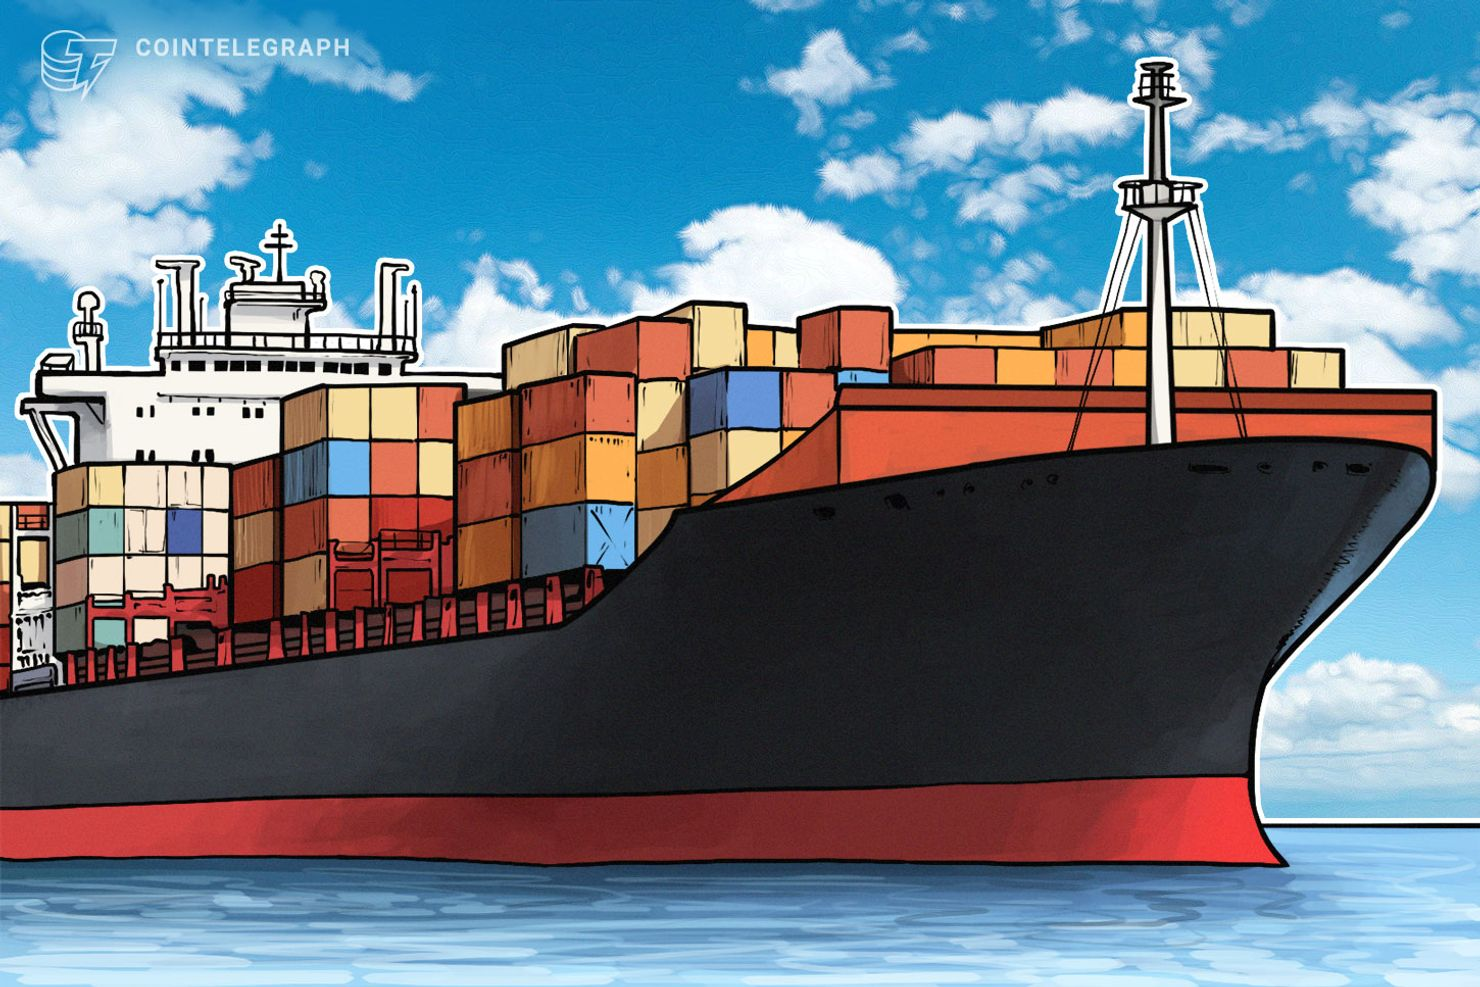 Leading UK Port Operator Seeks to Improve Shipping Logistics via Blockchain